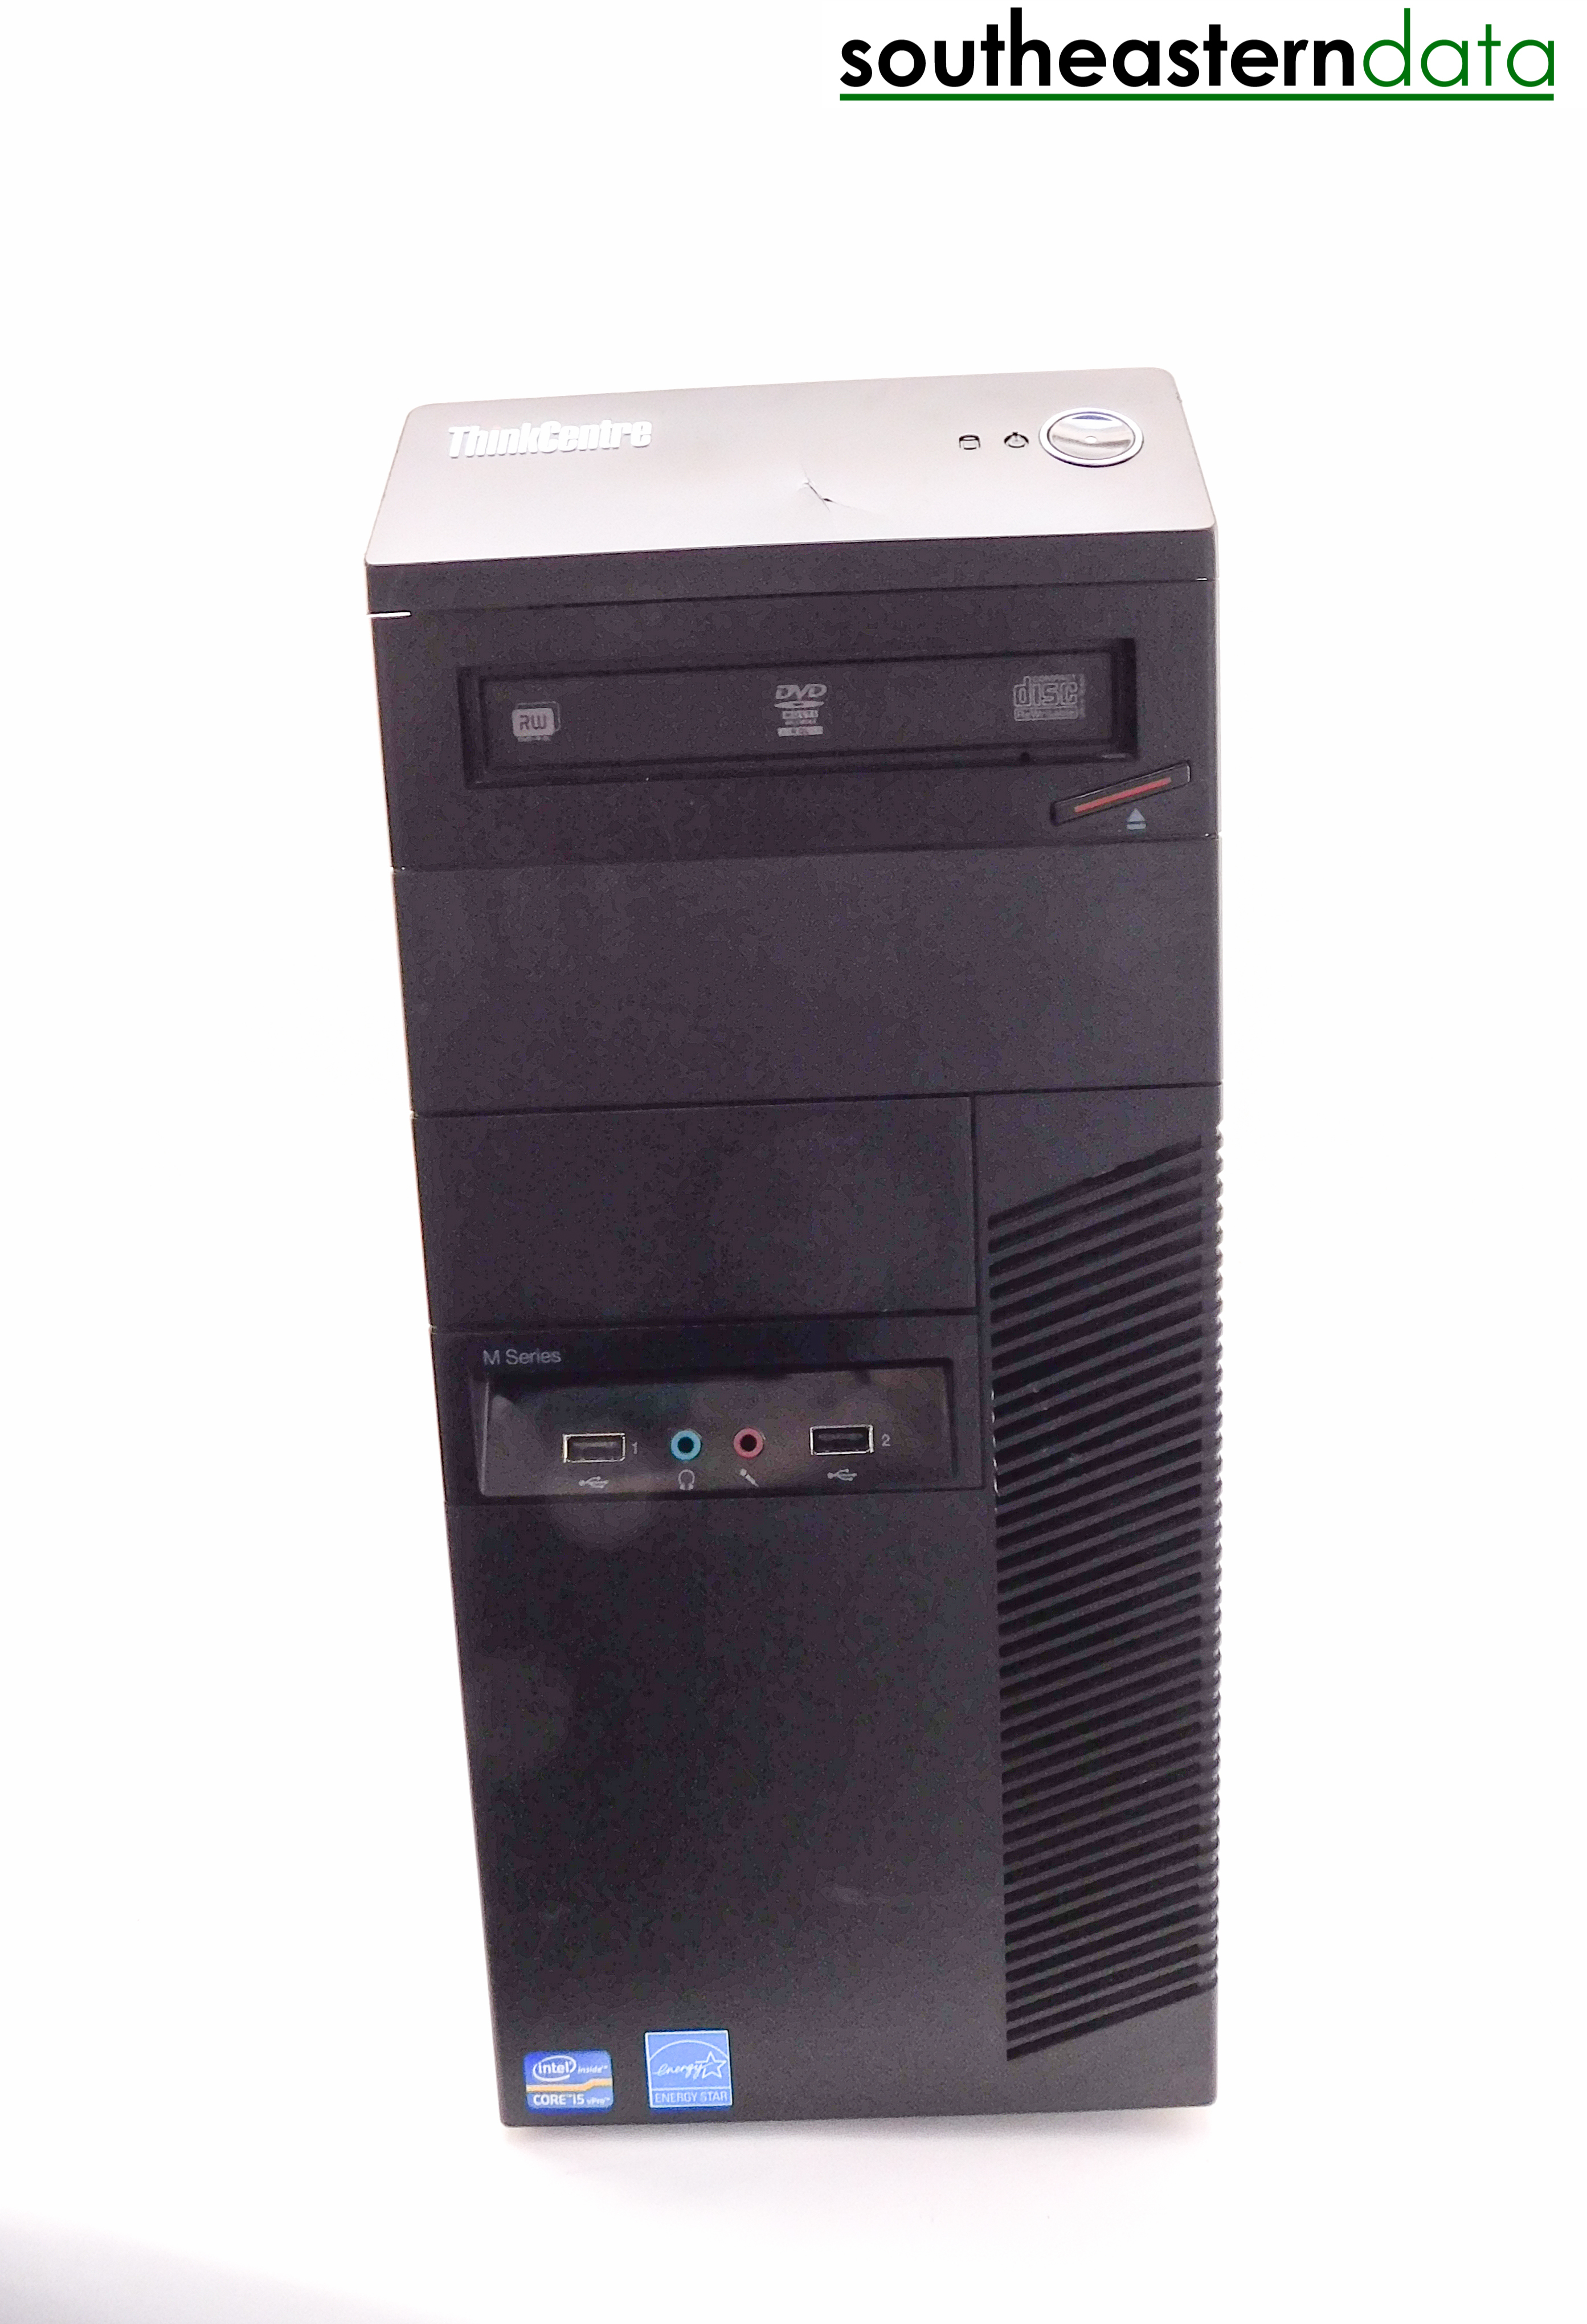 Lenovo ThinkCentre M92p Desktop Core i5-3570 3.40GHz 4GB RAM 250GB HDD Win 8.1 P